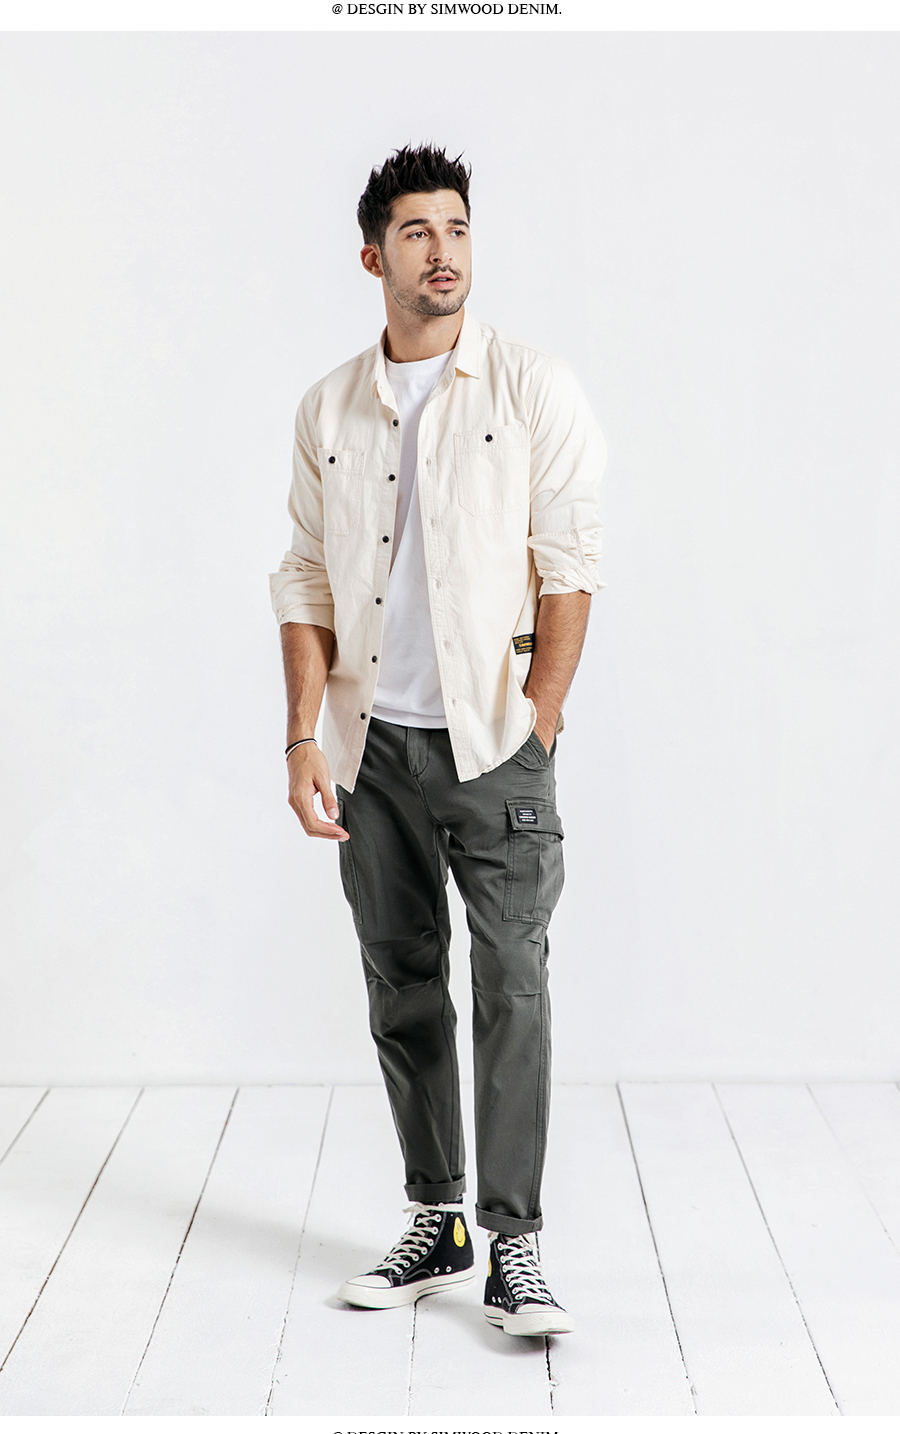 Hbff3ee0708f74ac8a1ee2efd01904a6fk SIMWOOD New 2019 Casual Pants Men Fashion track Cargo Pants Ankle-Length military autumn Trousers Men pantalon hombre 180614